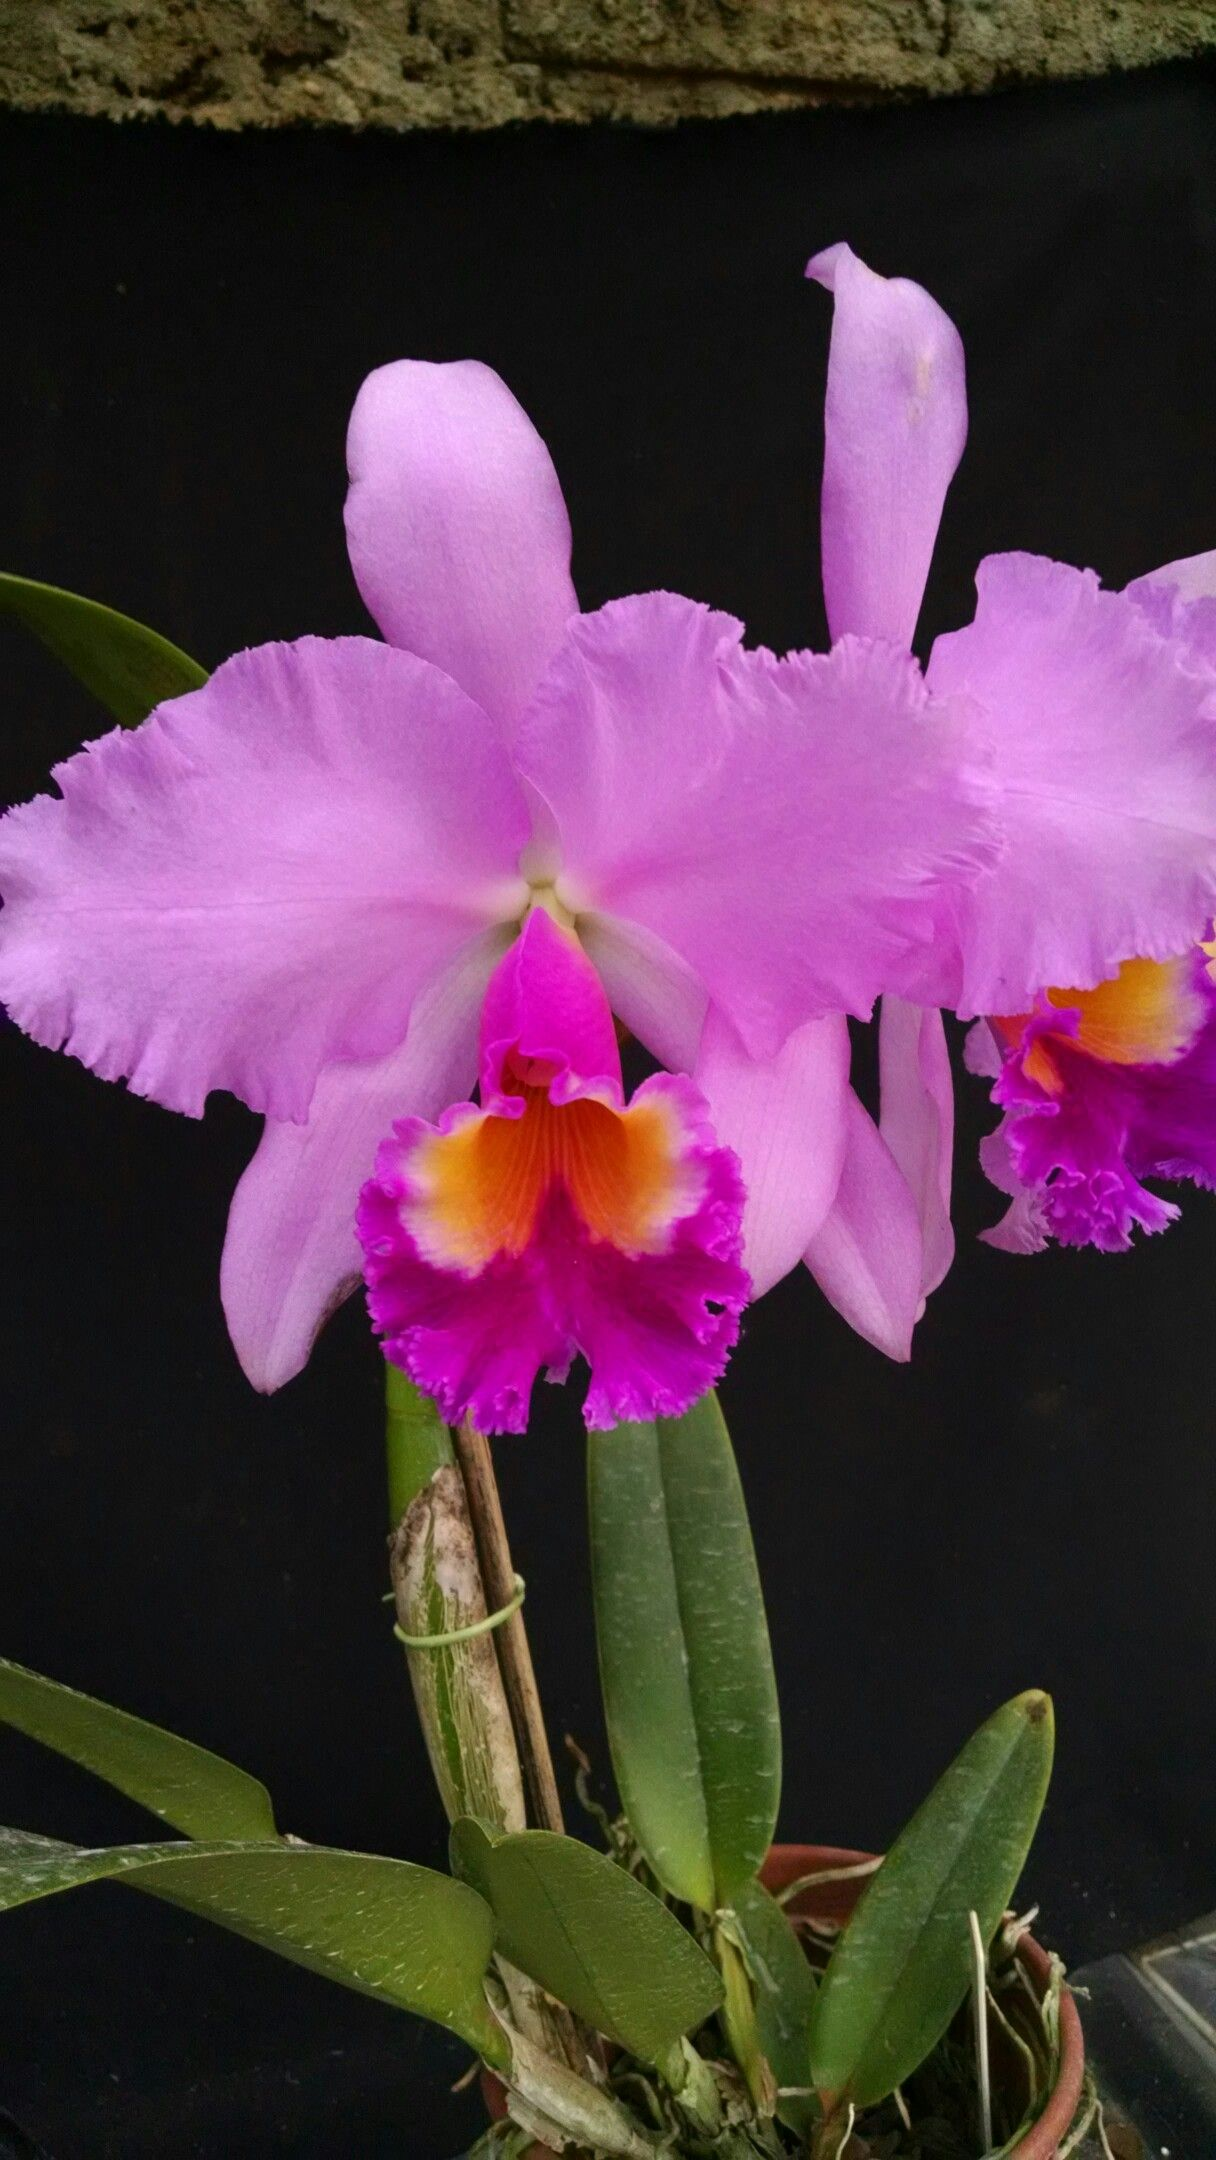 Blc Mikki Nagata X Aba Balmores Orchid Flower Chinese Money Plant Orchid Photo